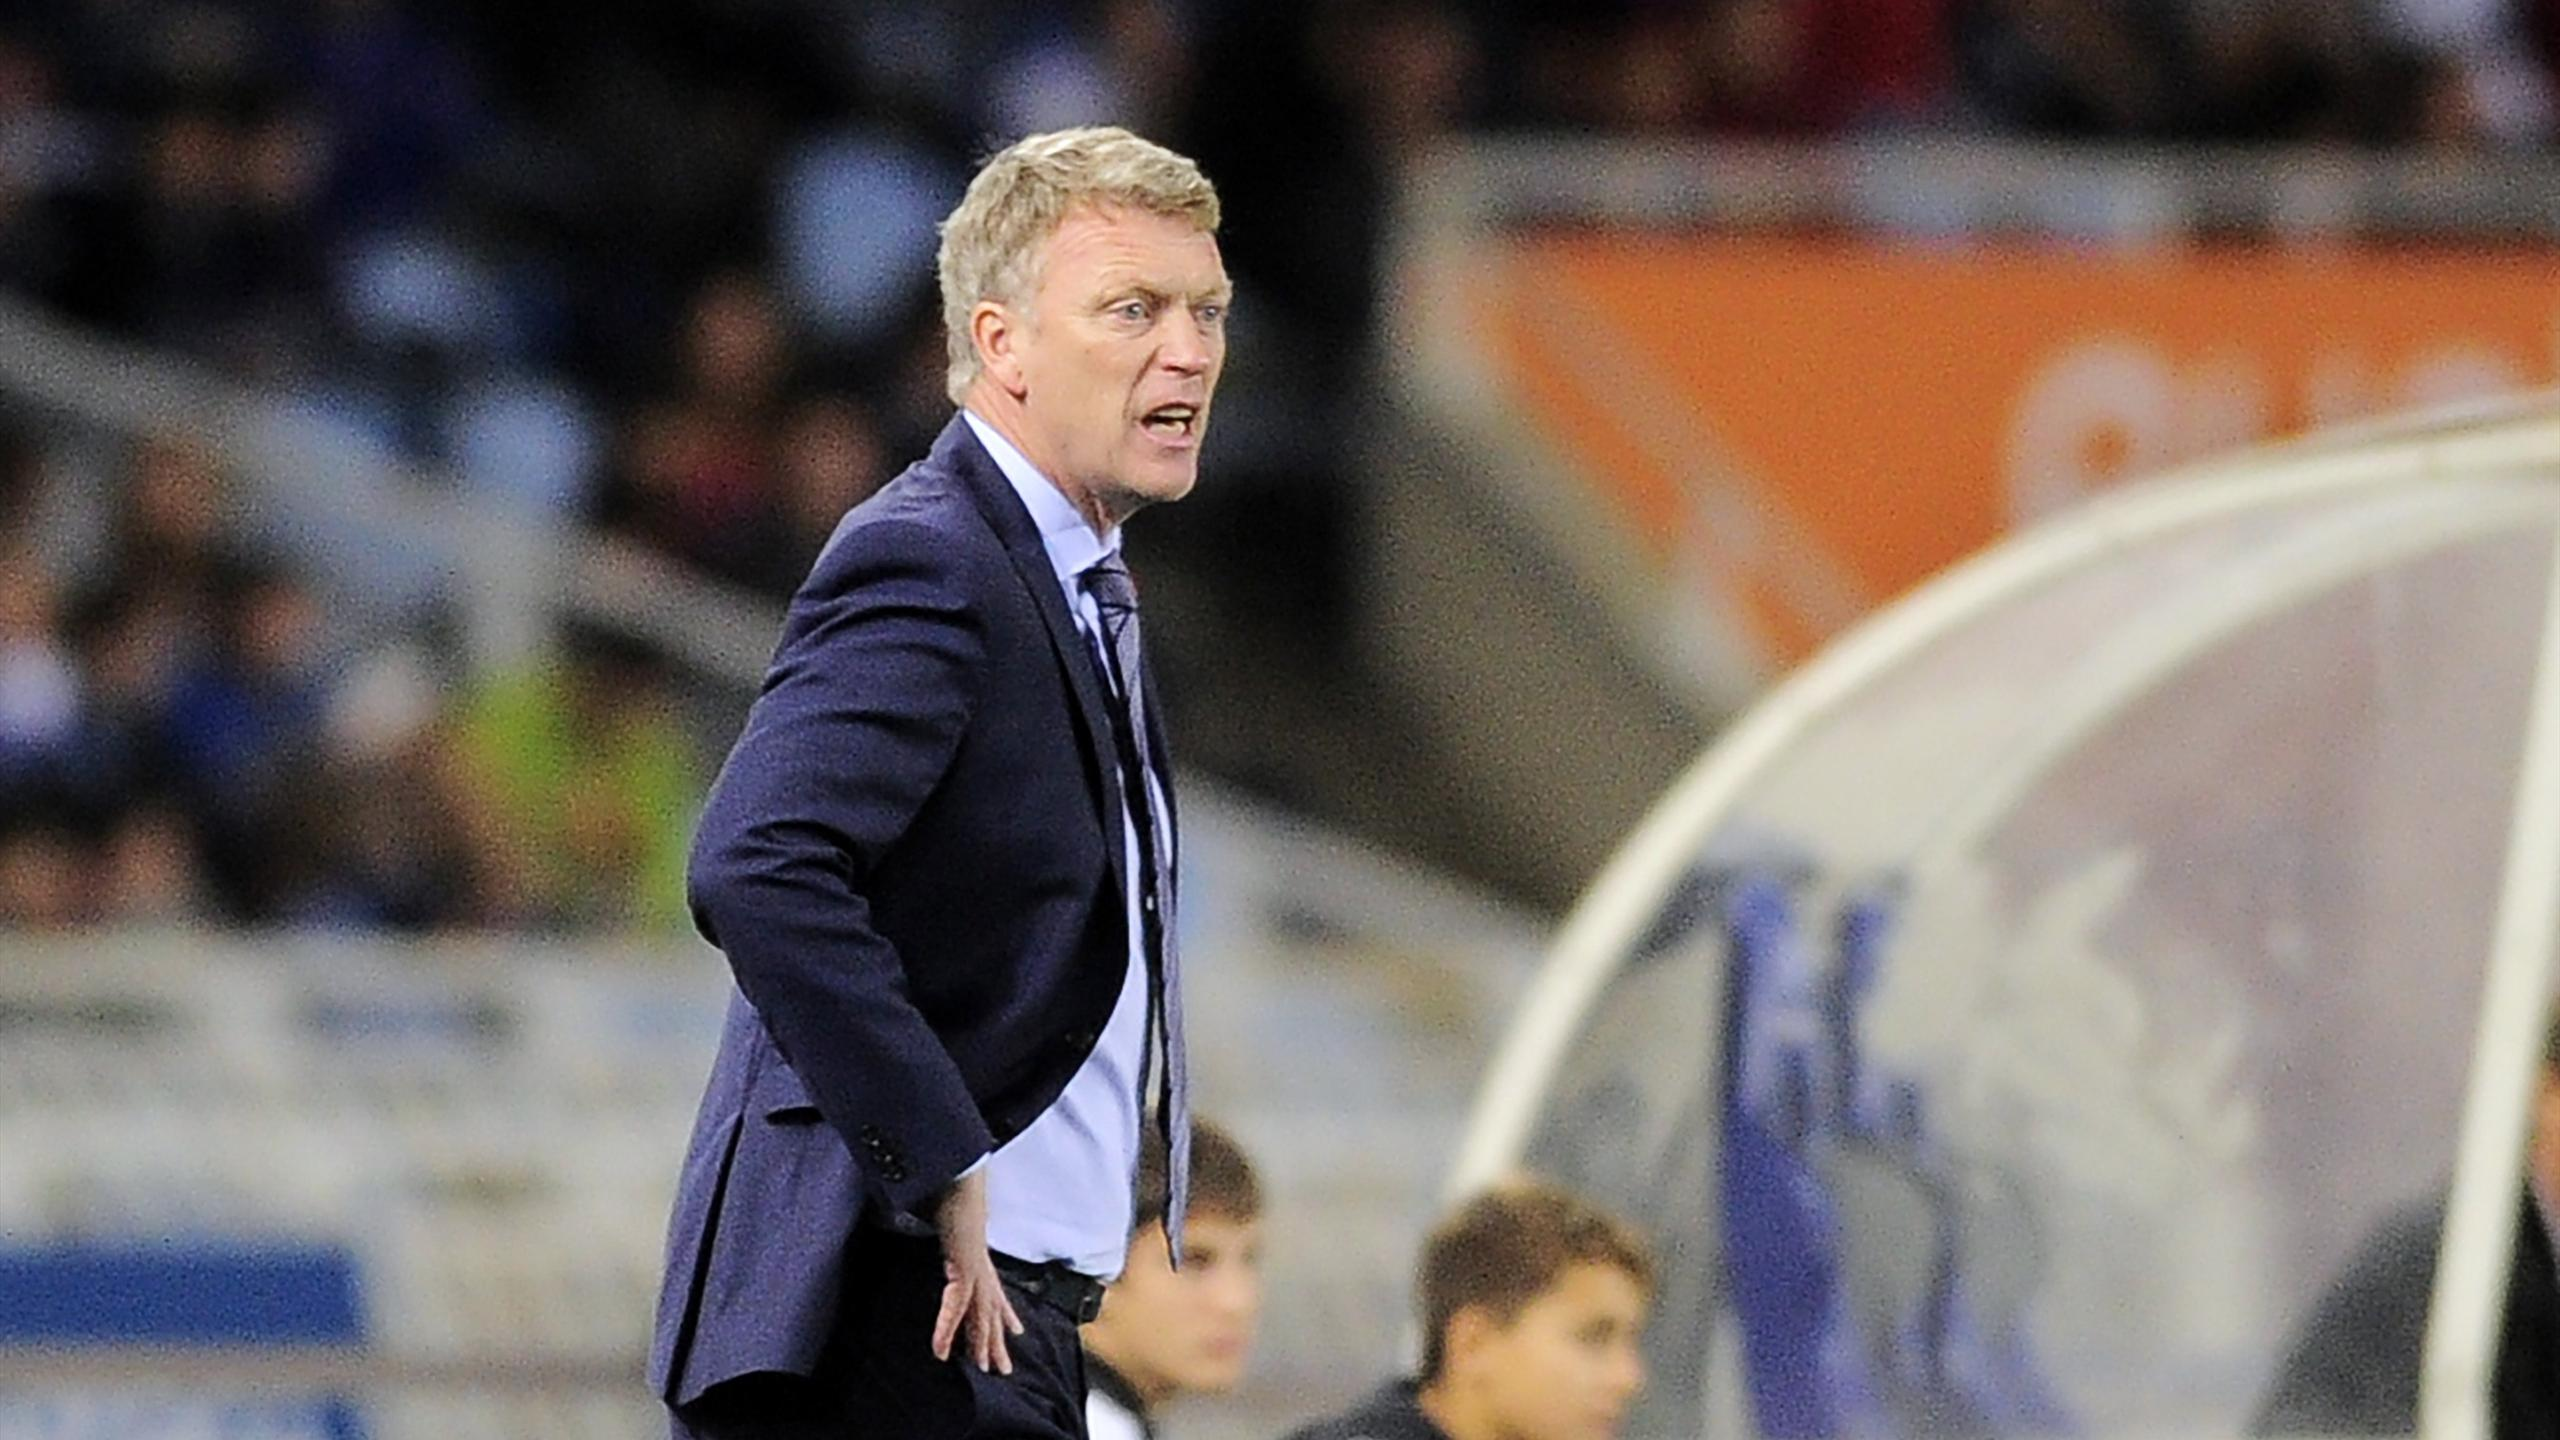 Real Sociedad's Scottish coach David Moyes walks along the sidelines during the Spanish league football match Real Sociedad de Futbol vs Celta Vigo at the Anoeta stadium in San Sebastian on October 31, 2015.